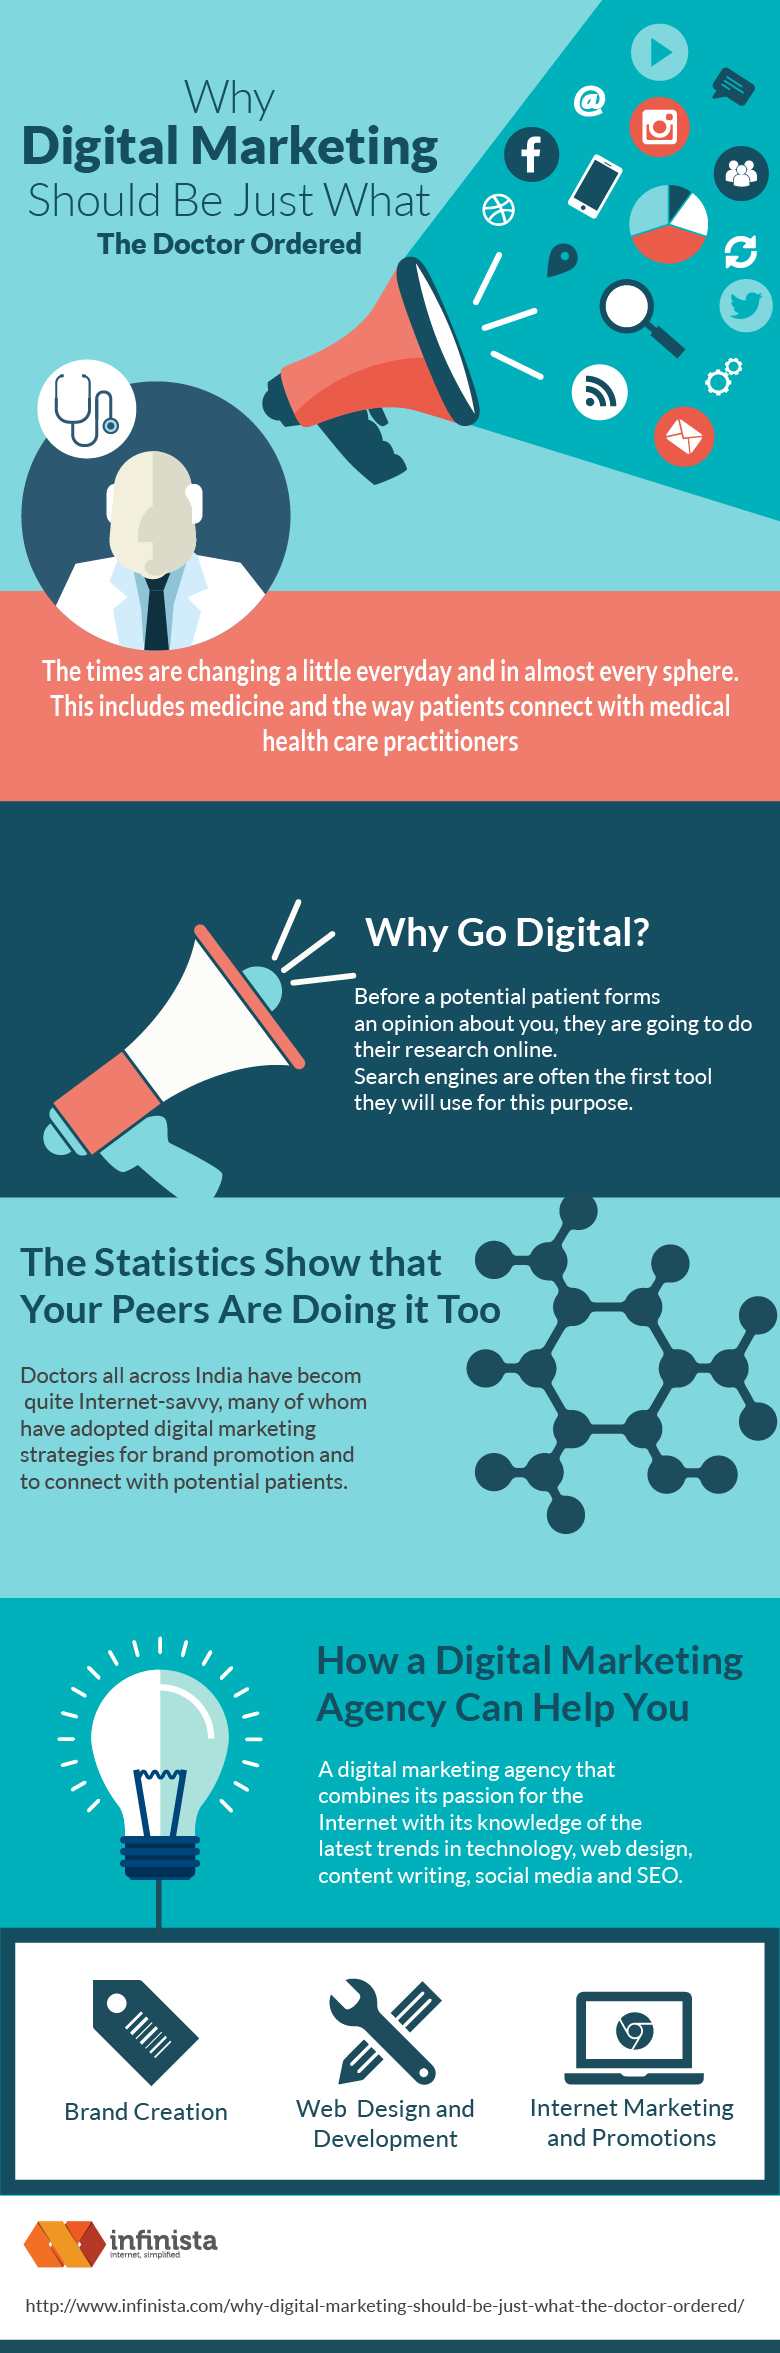 why-digital-marketing-should-be-just-what-the-doctor-ordered-infographic_54a62da0a1d6b